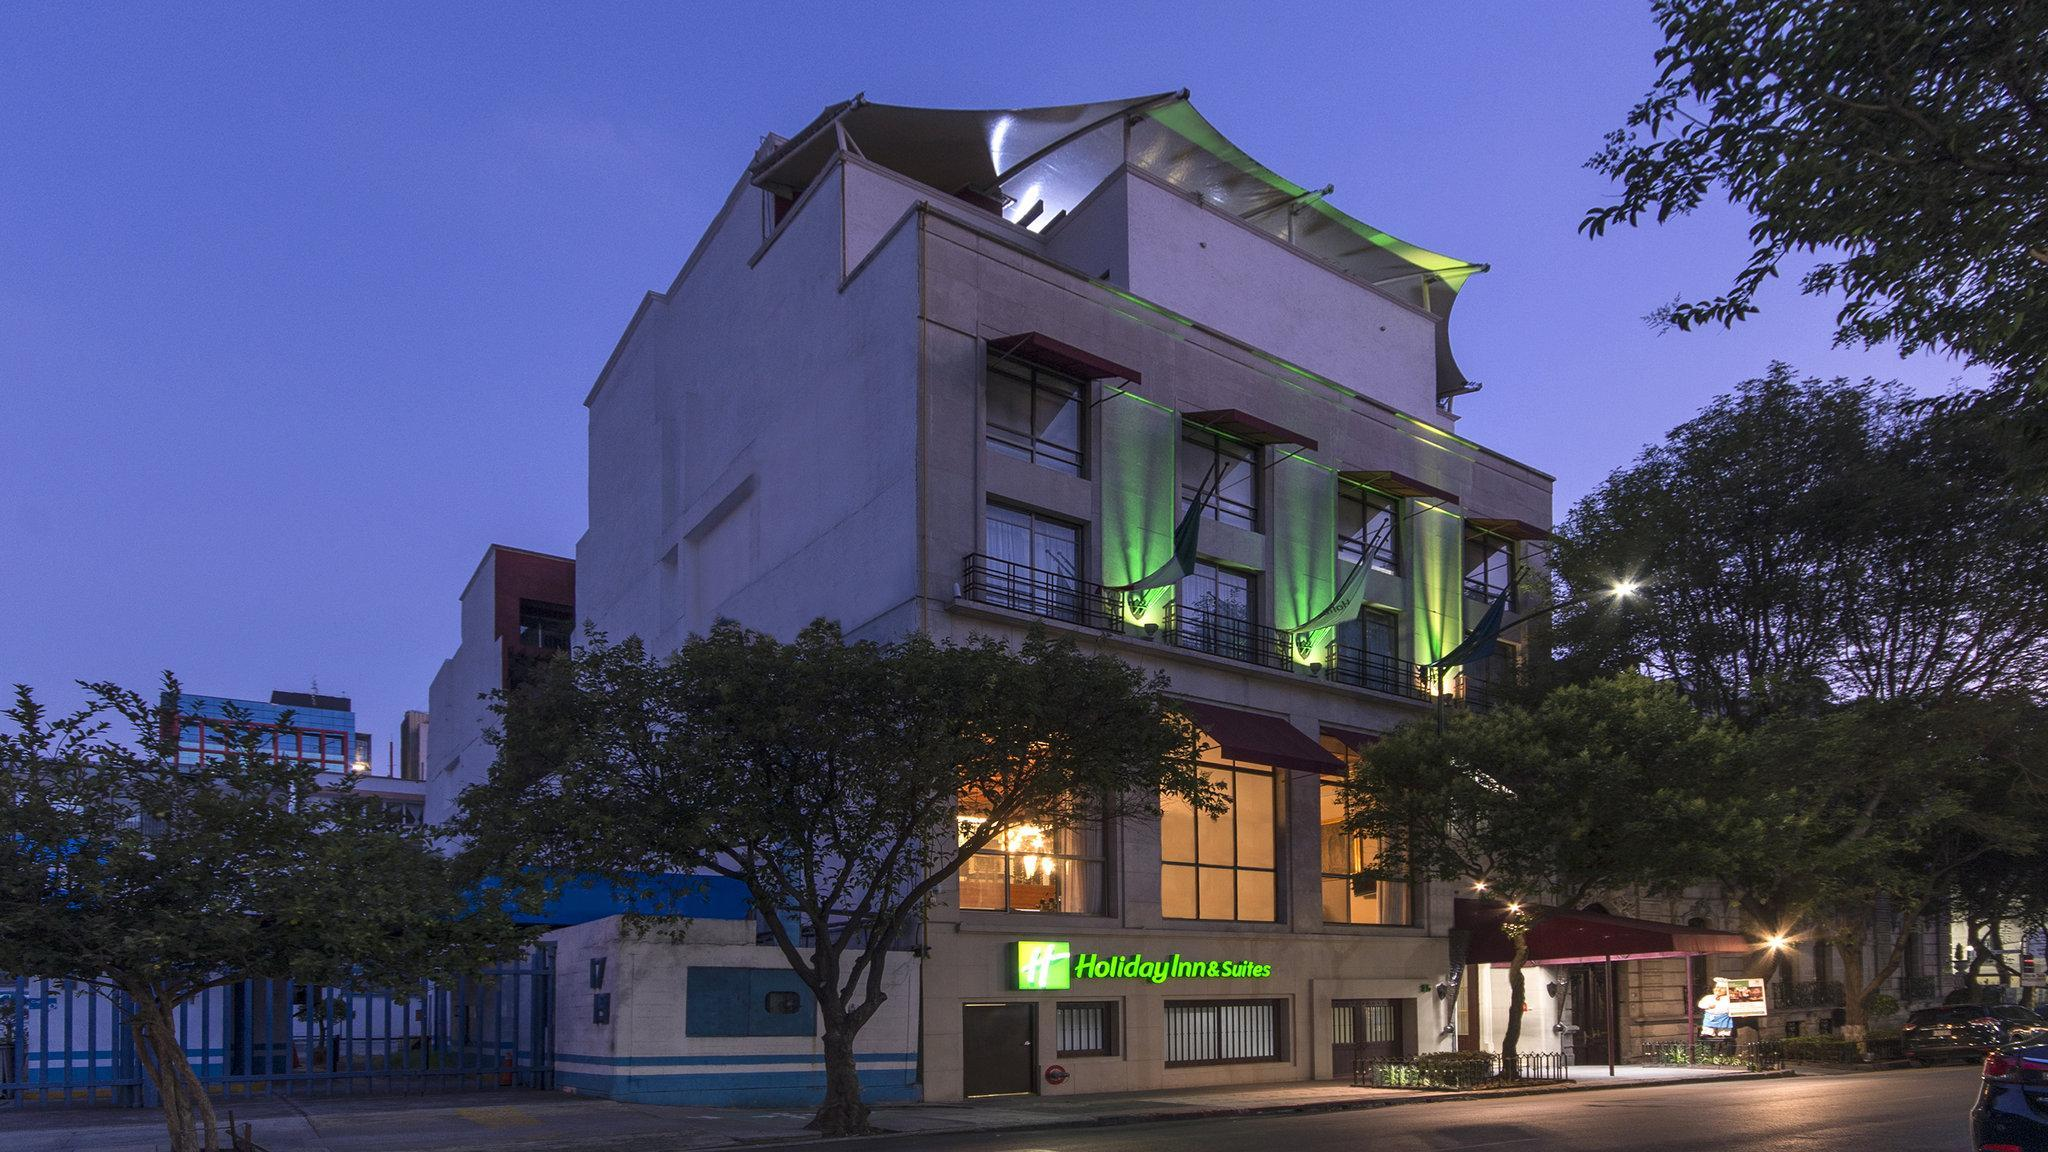 Holiday Inn Hotel And Suites Mexico Zona Rosa